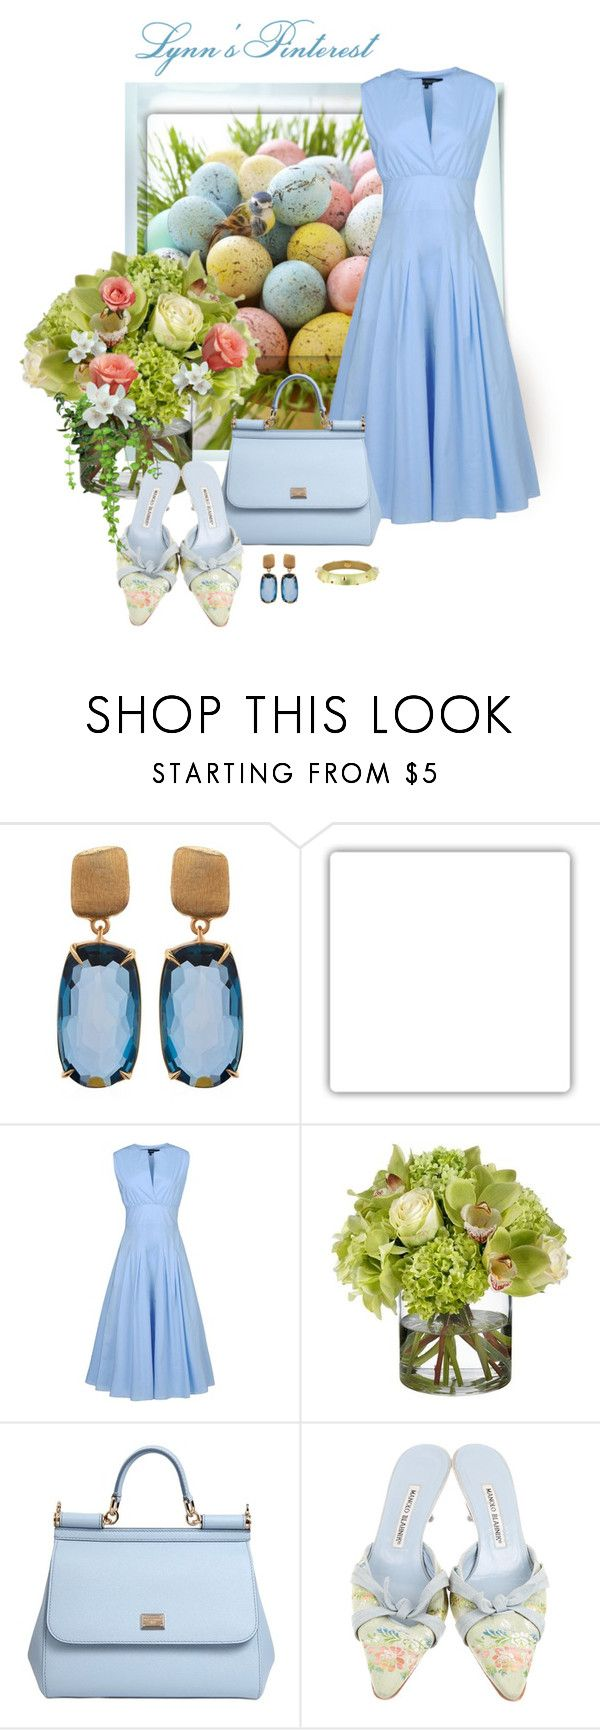 """Easter 2 -  #3666"" by lynnspinterest ❤ liked on Polyvore featuring Marco Bicego, Keen Footwear, Ter Et Bantine, Diane James, Dolce&Gabbana, Manolo Blahnik and 3666"